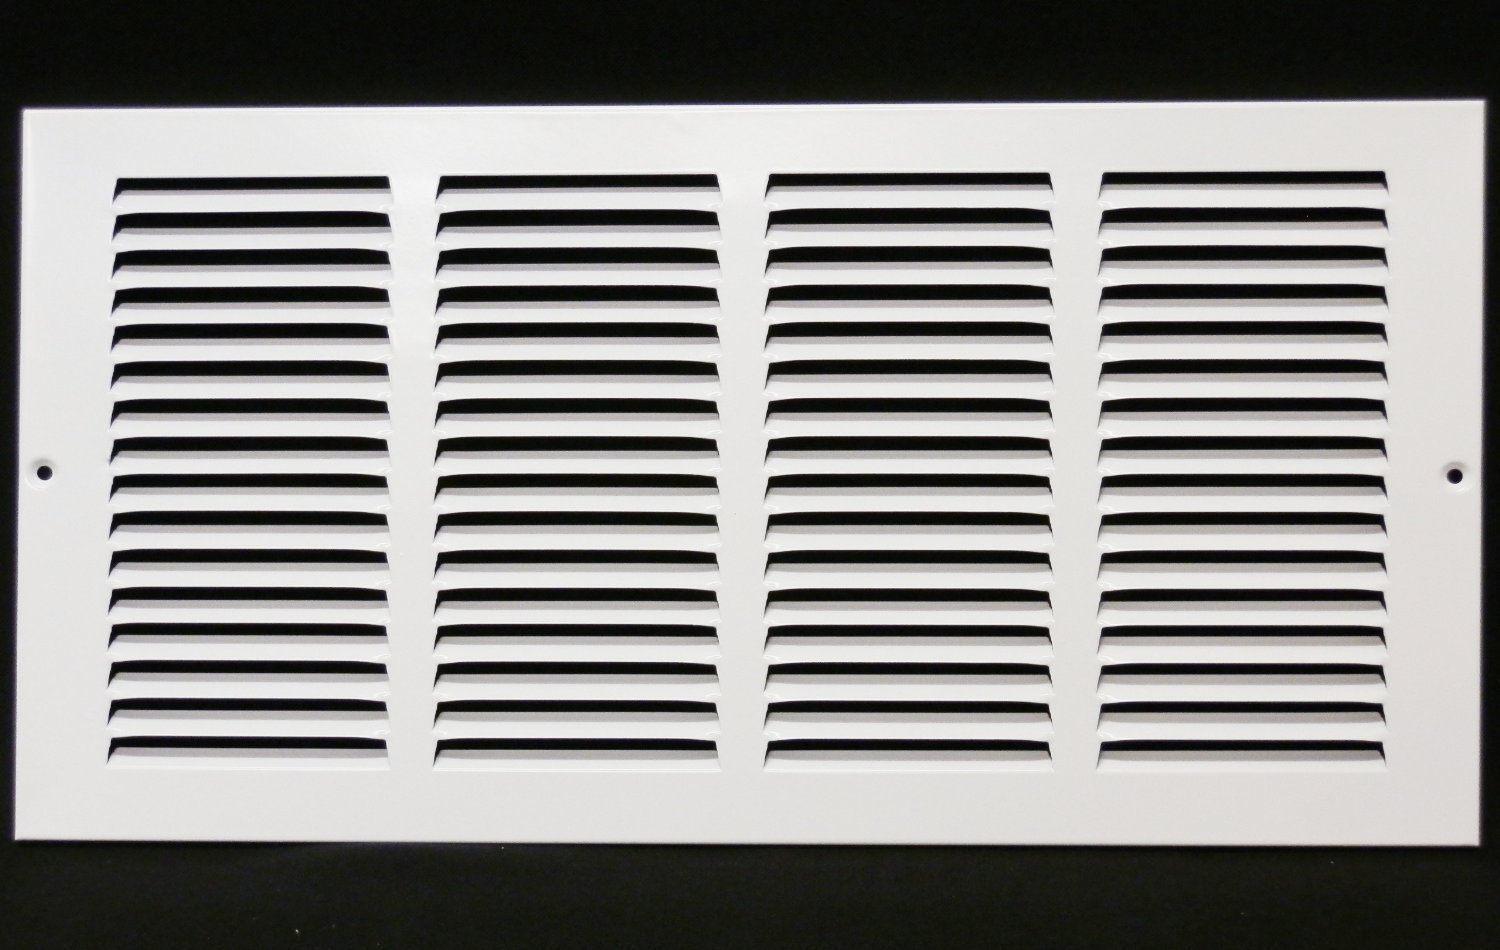 """16""""w X 12""""h Steel Return Air Grilles - Sidewall and Ceiling - HVAC Duct Cover - White [Outer Dimensions: 17.75""""w X 13.75""""h]"""